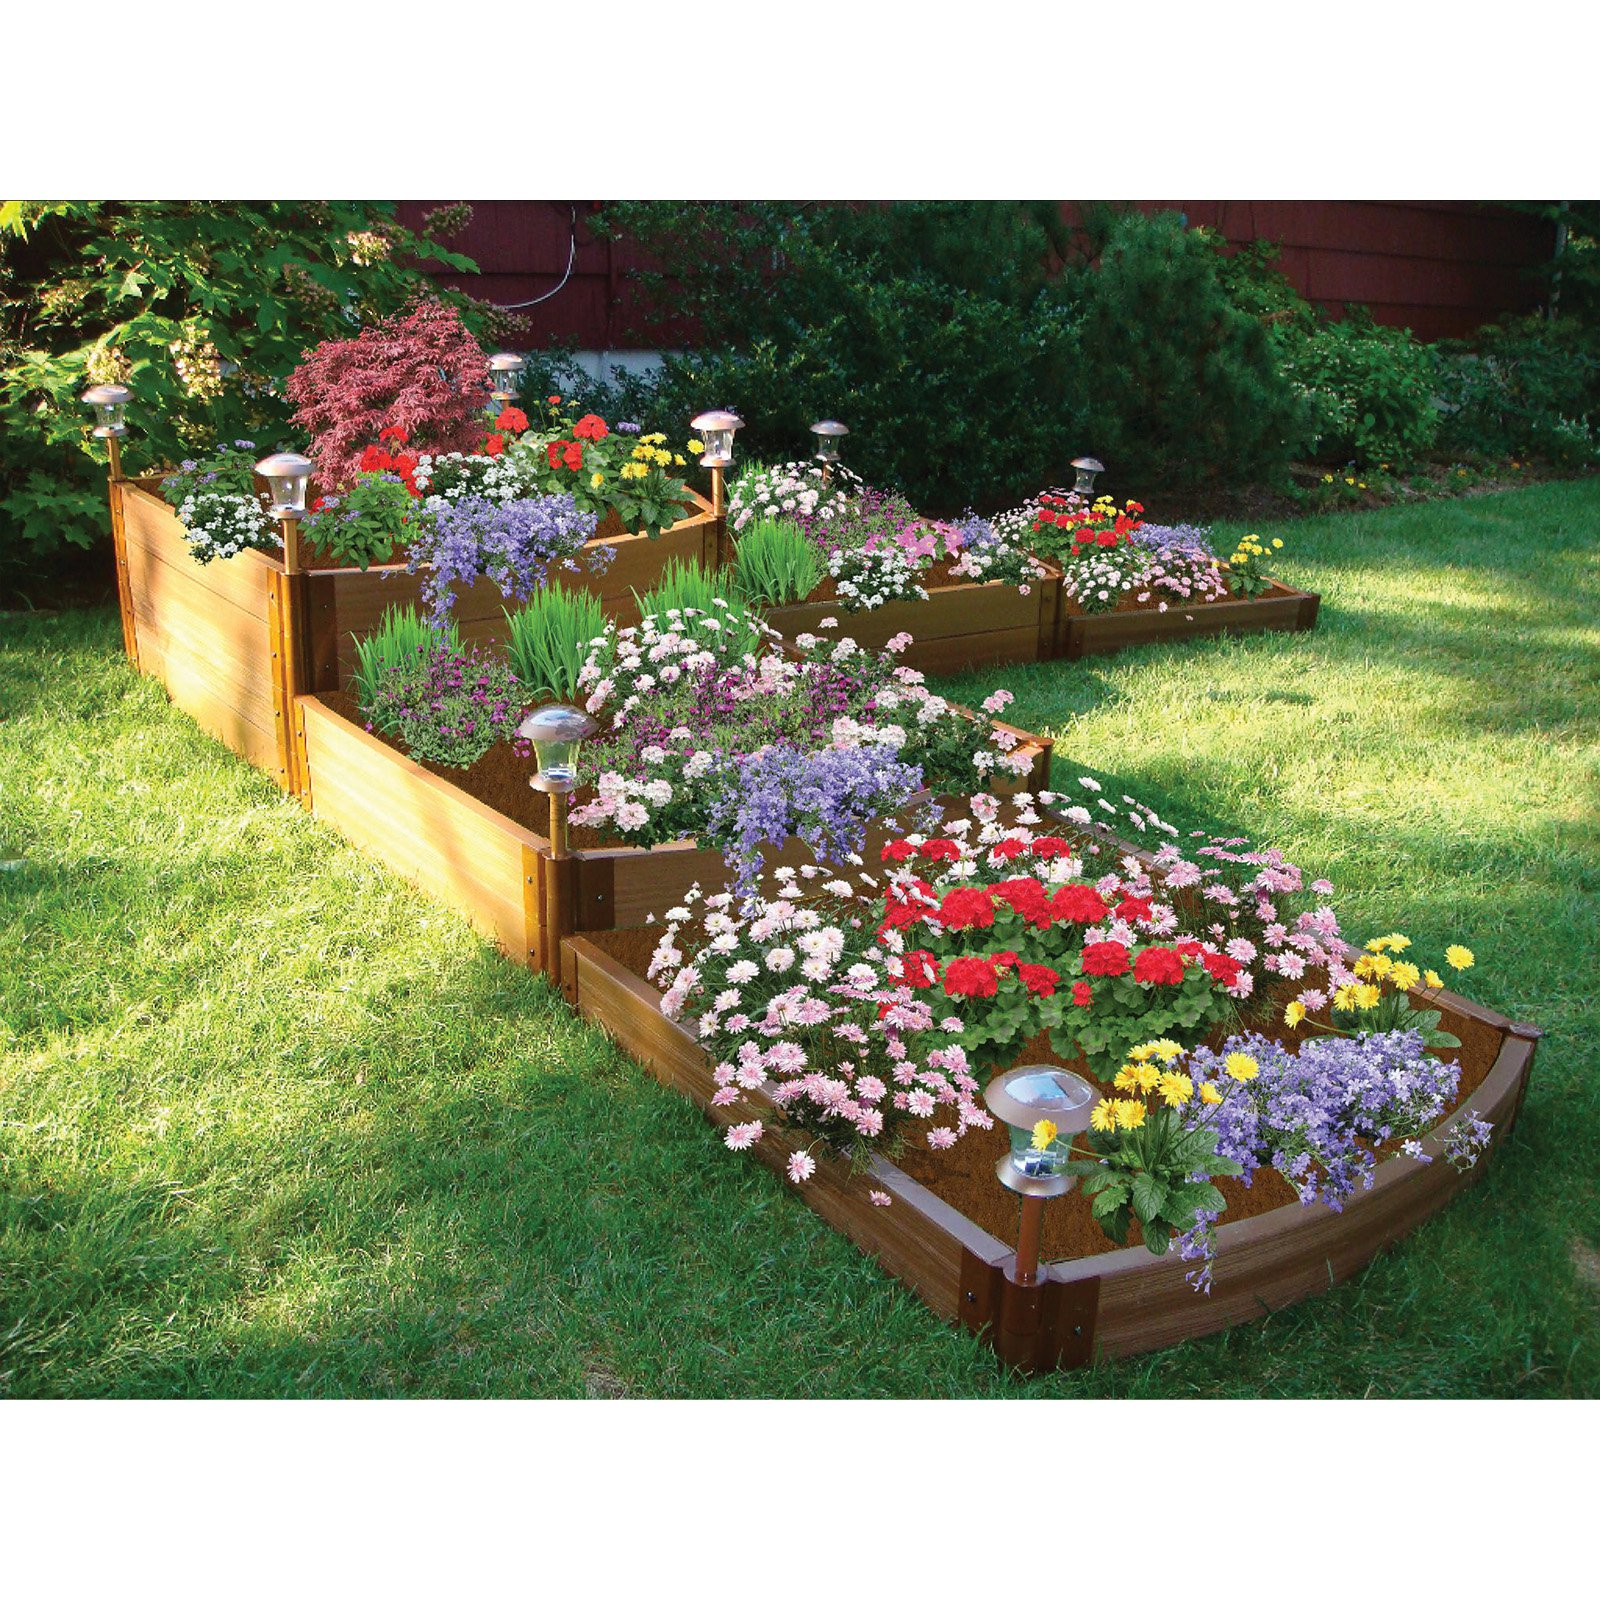 Frame It All 1-inch Series Composite Split Waterfall Raised Garden Bed Kit - 144in. x 144in. x 22in.